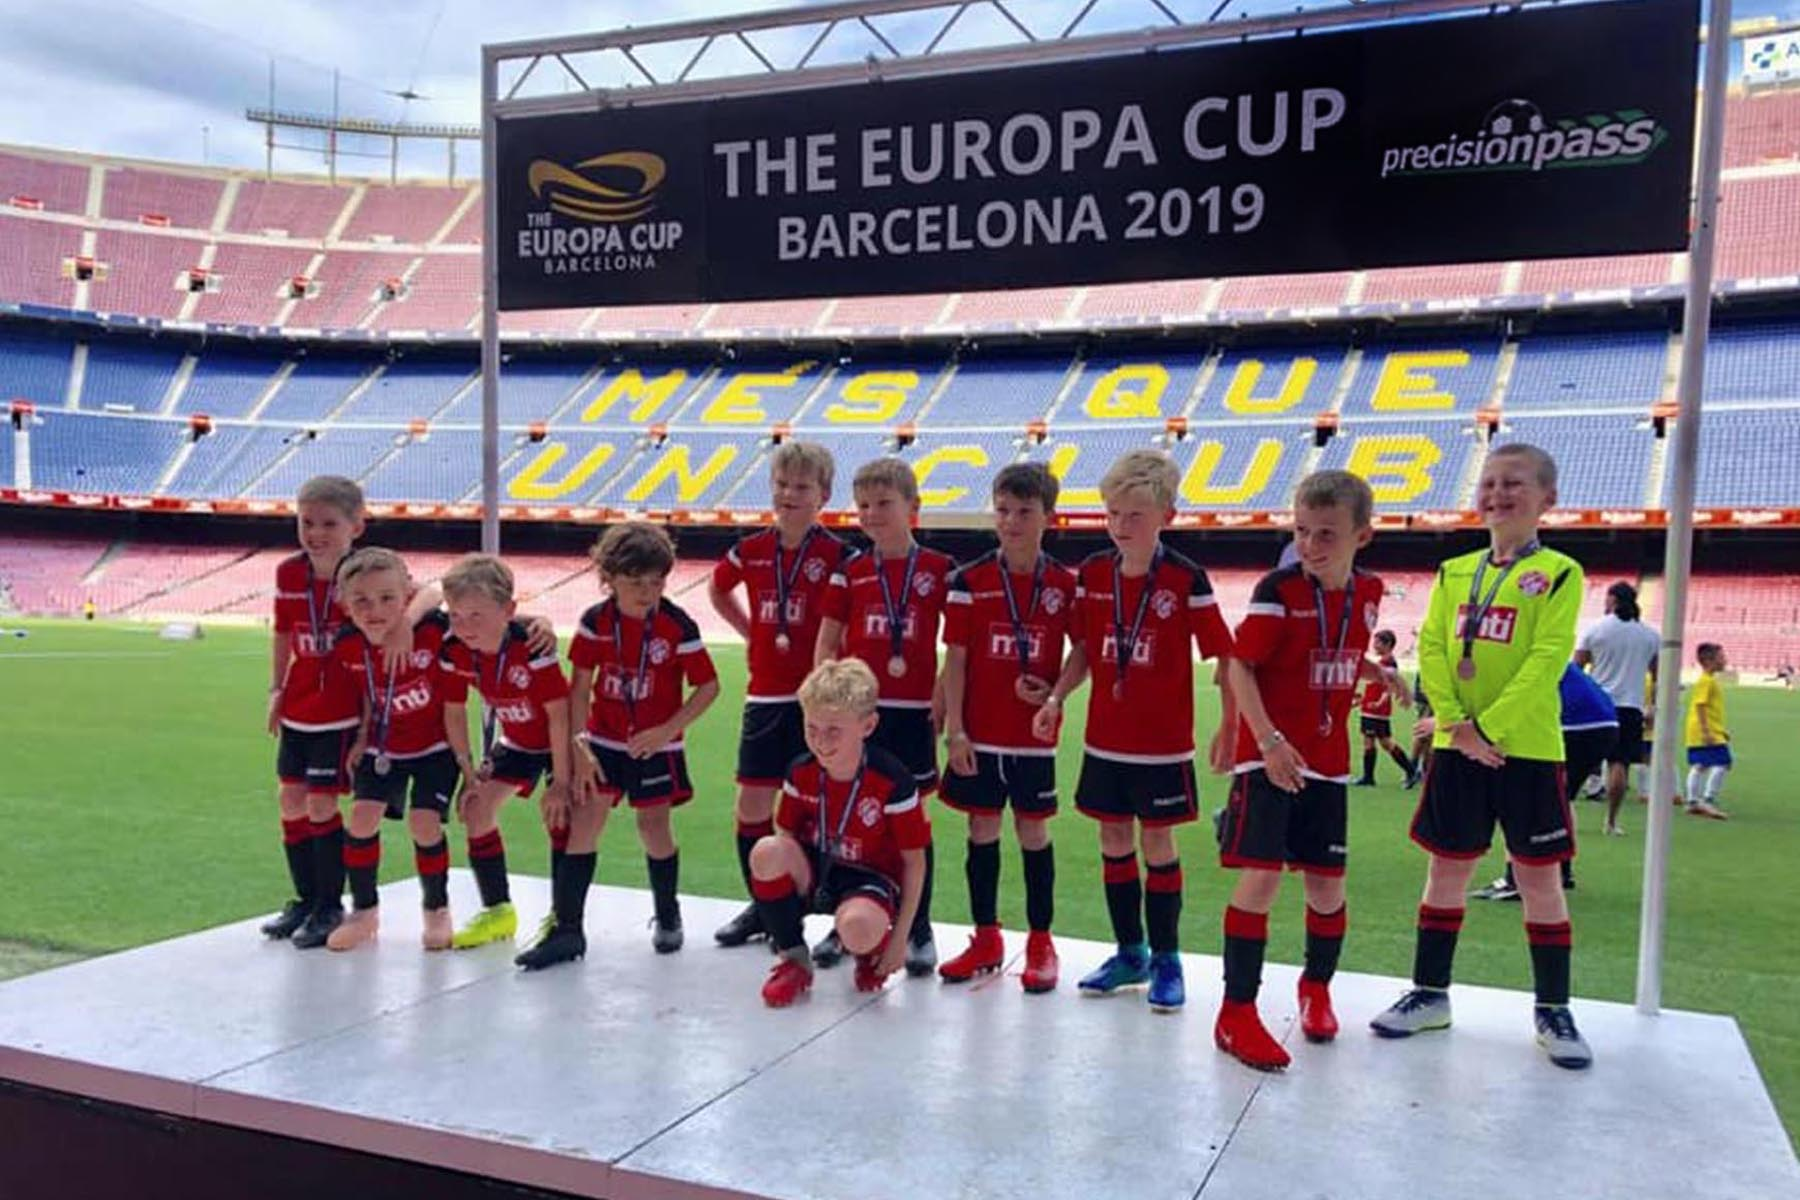 Small Sports Presentation Stage for Precision Pass at The Nou Camp Barcelona